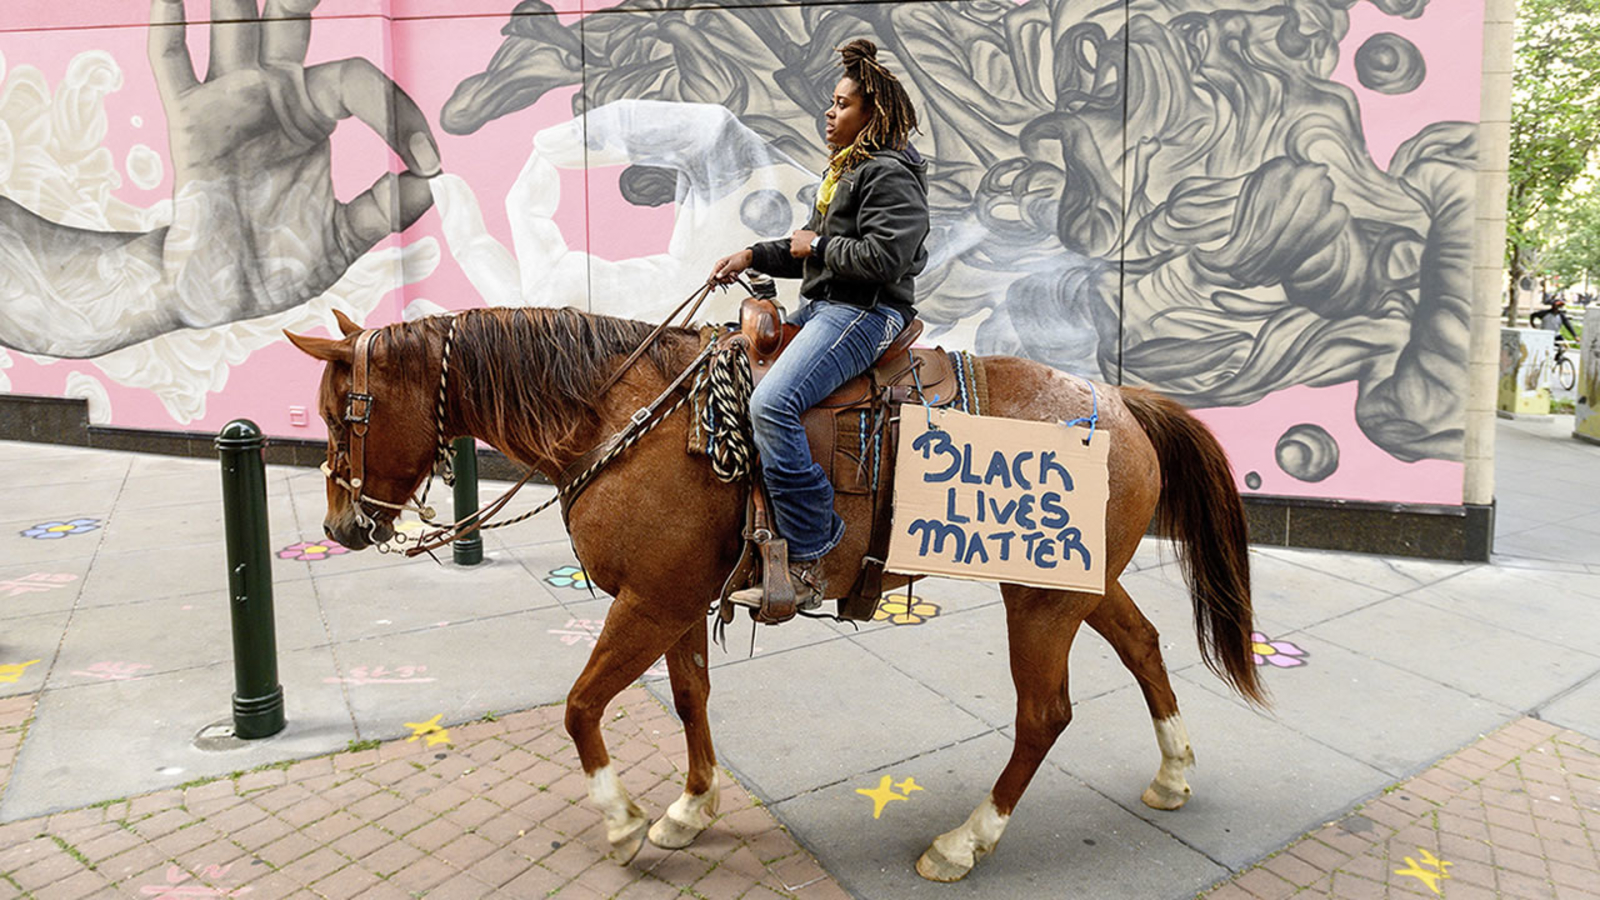 Meet the woman who protested in Oakland on a horse and learn why she did it